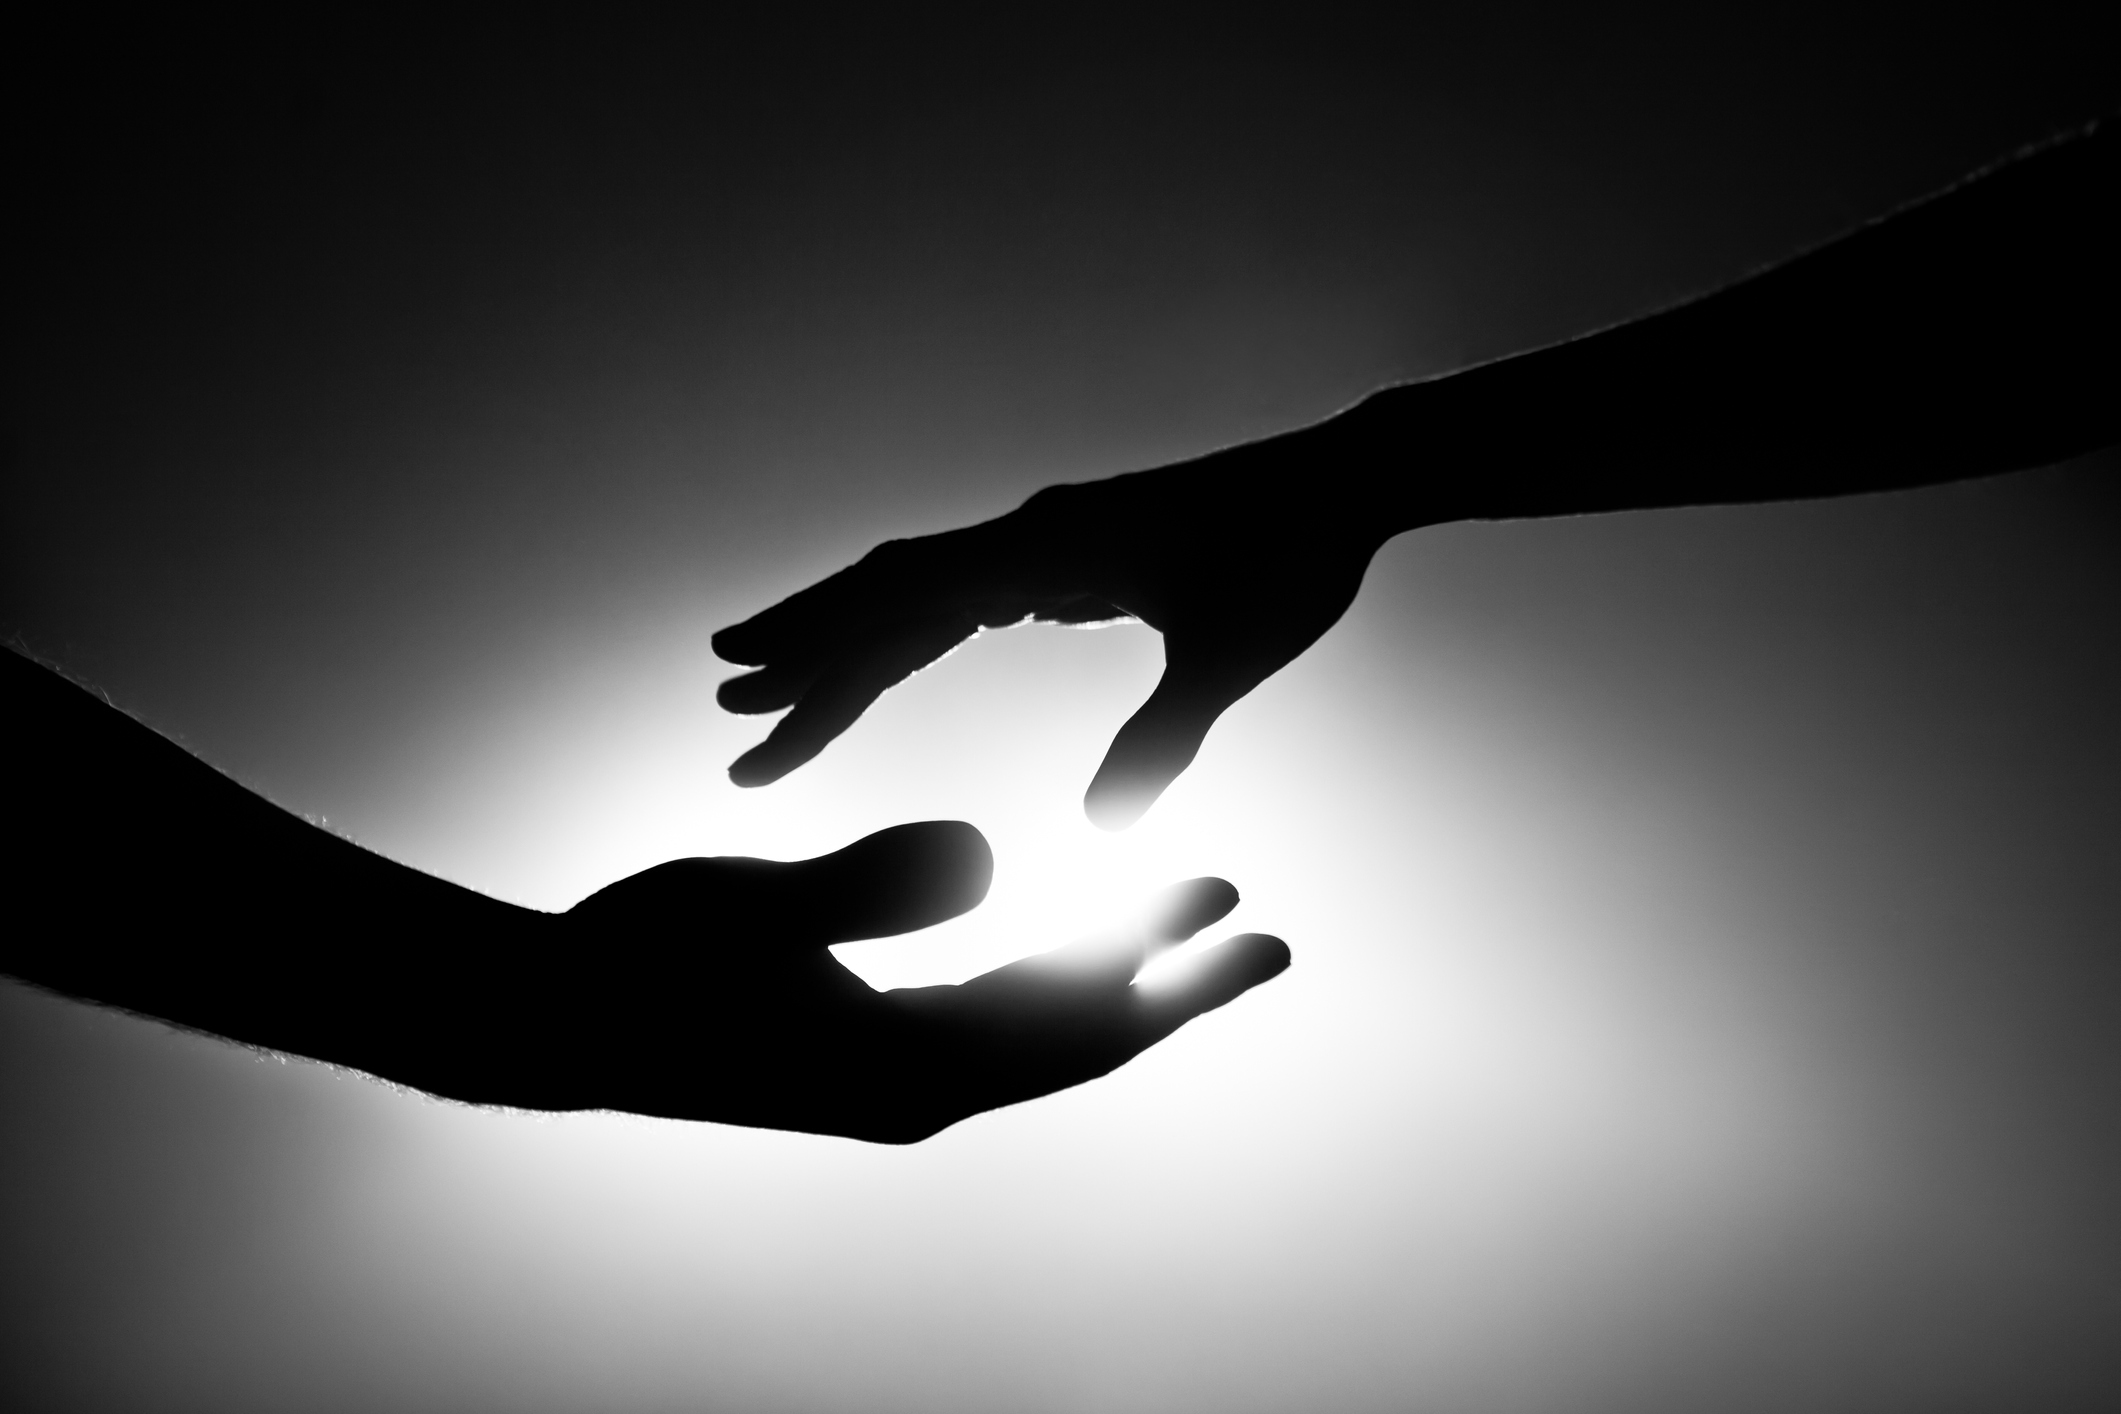 Black and white image of two hands reaching out.